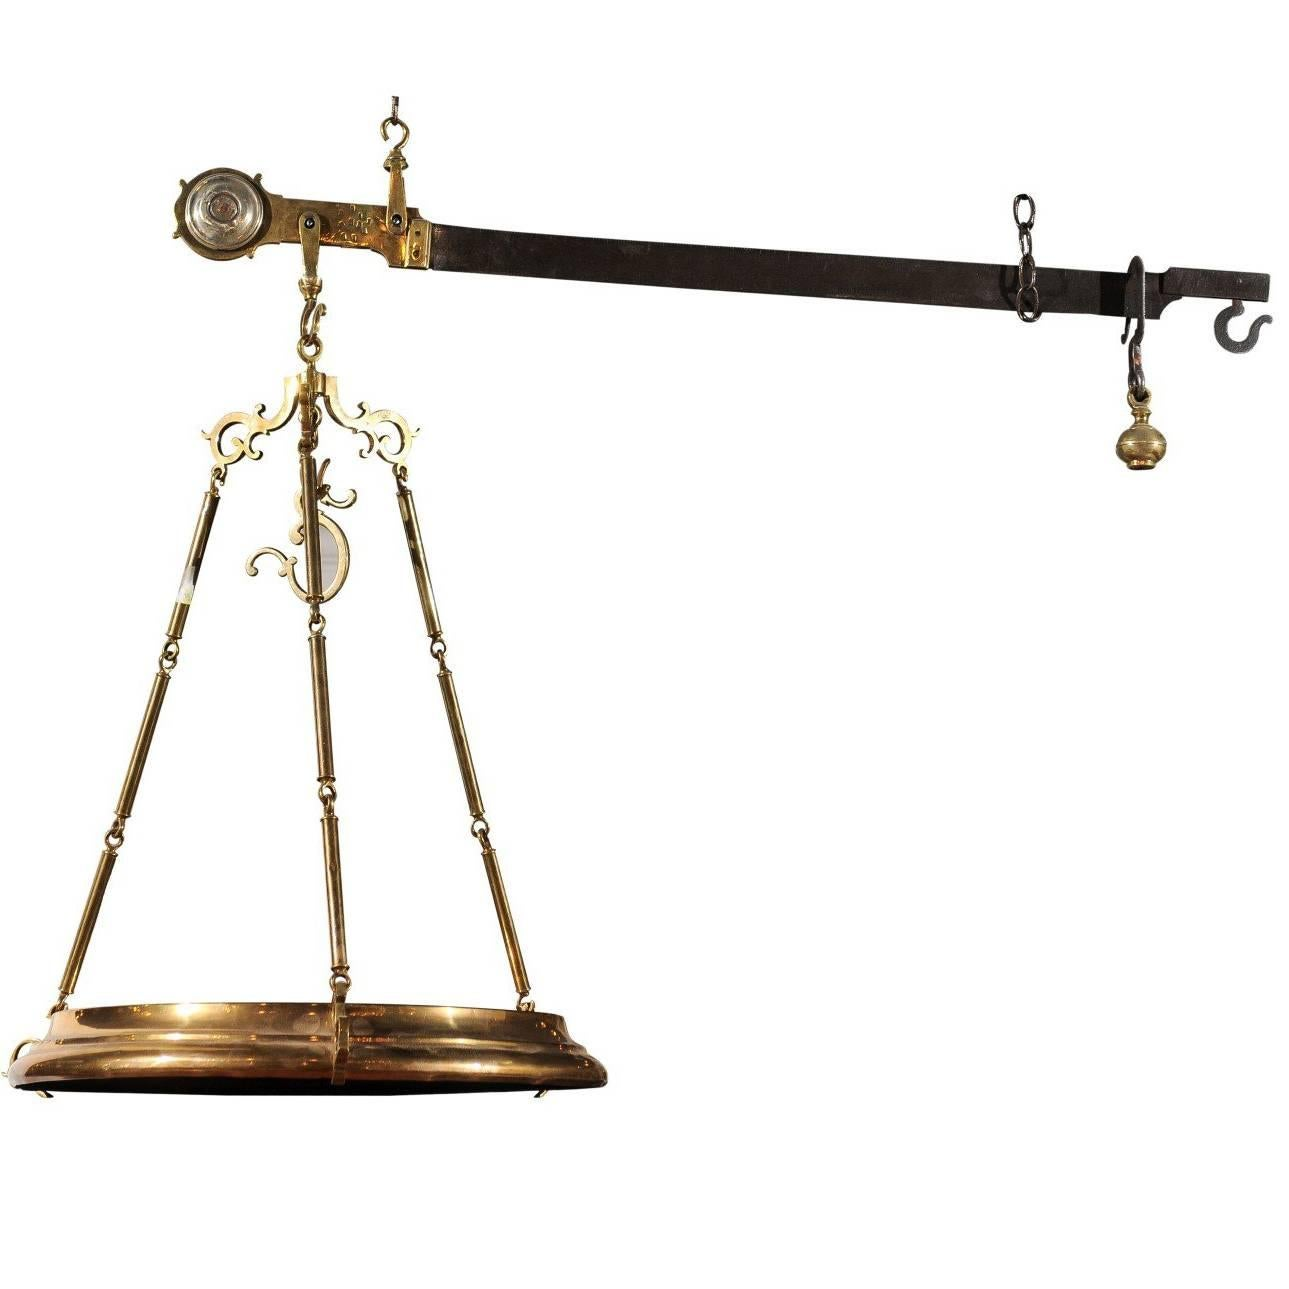 French Brass Hanging Butcher's Scale with Circular Tray from the 19th Century